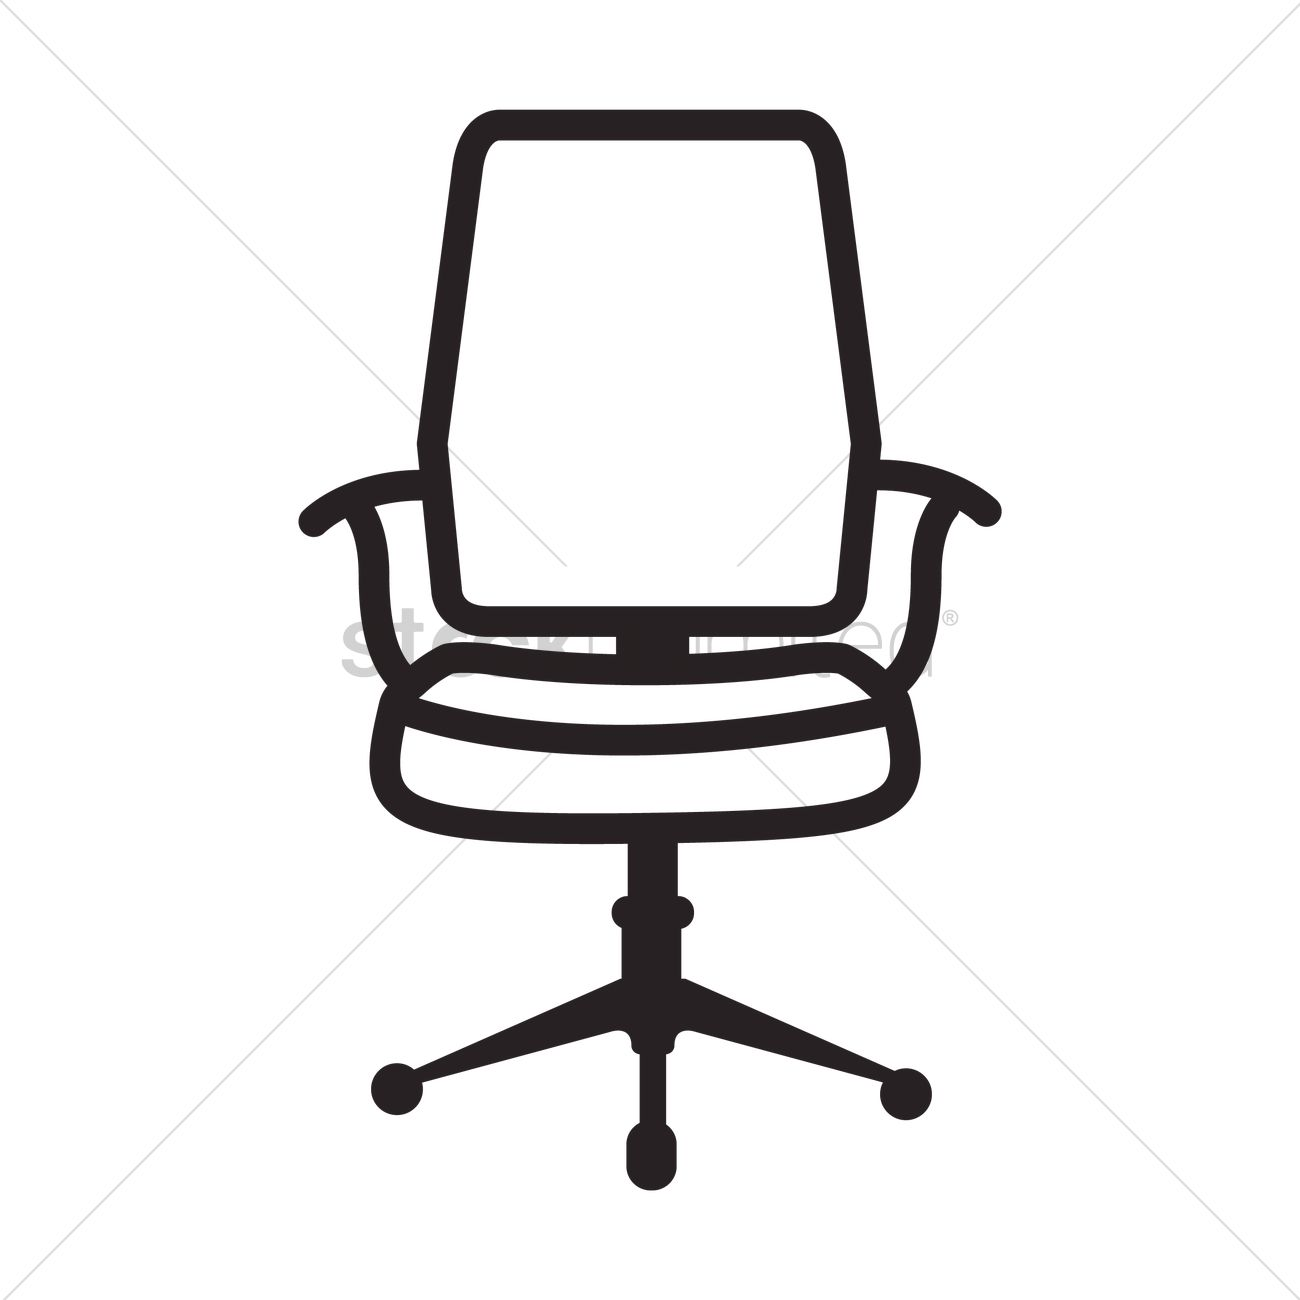 Black office chair clipart graphic library library Office Chair Clipart | Free download best Office Chair Clipart on ... graphic library library